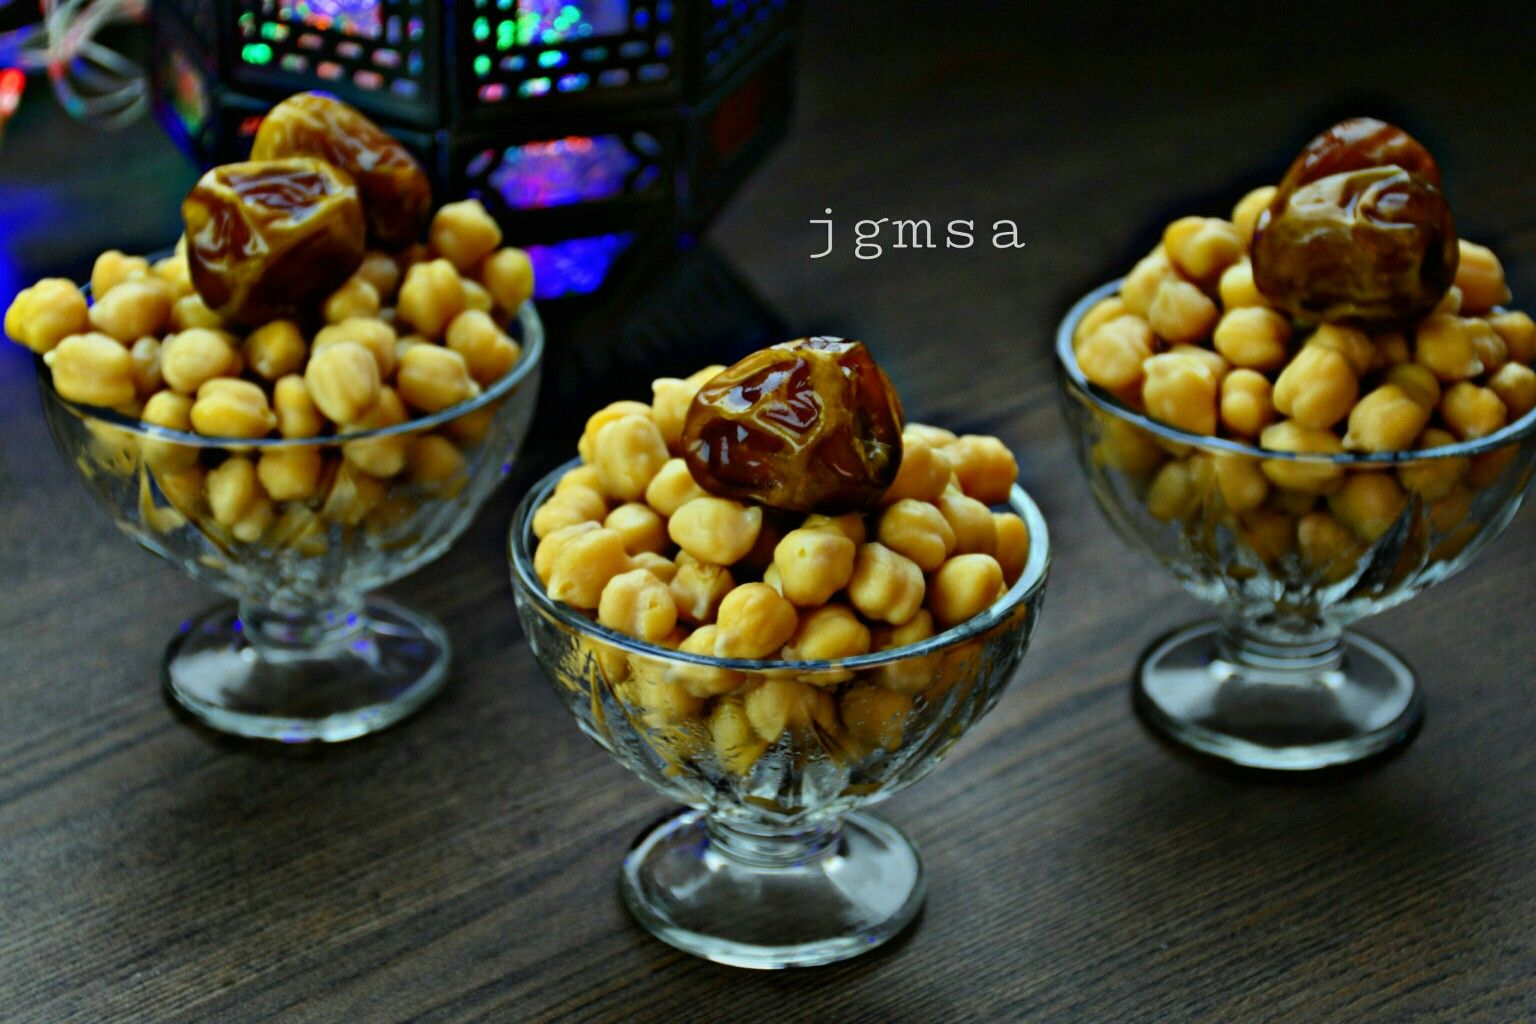 Pin By Ran On رمضان 2022 Food Breakfast Cereal